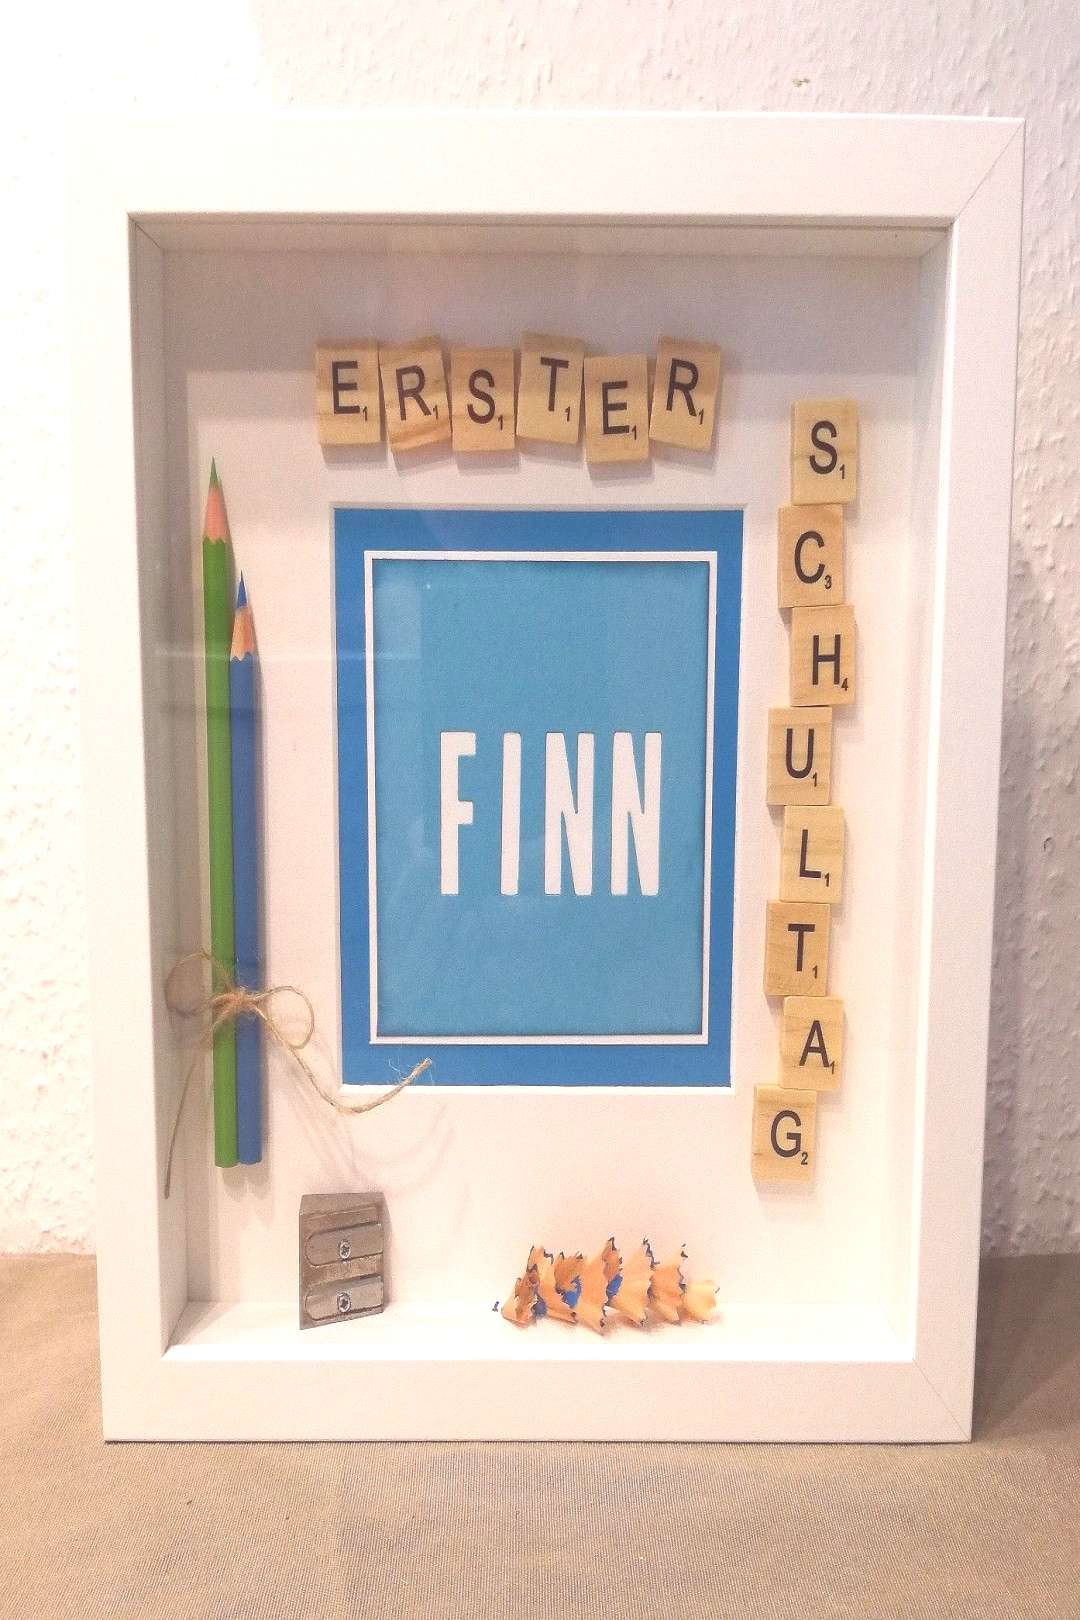 Ribba frame schooling, first day of school framed. Memories, pens - Ribba frame schooling, first d